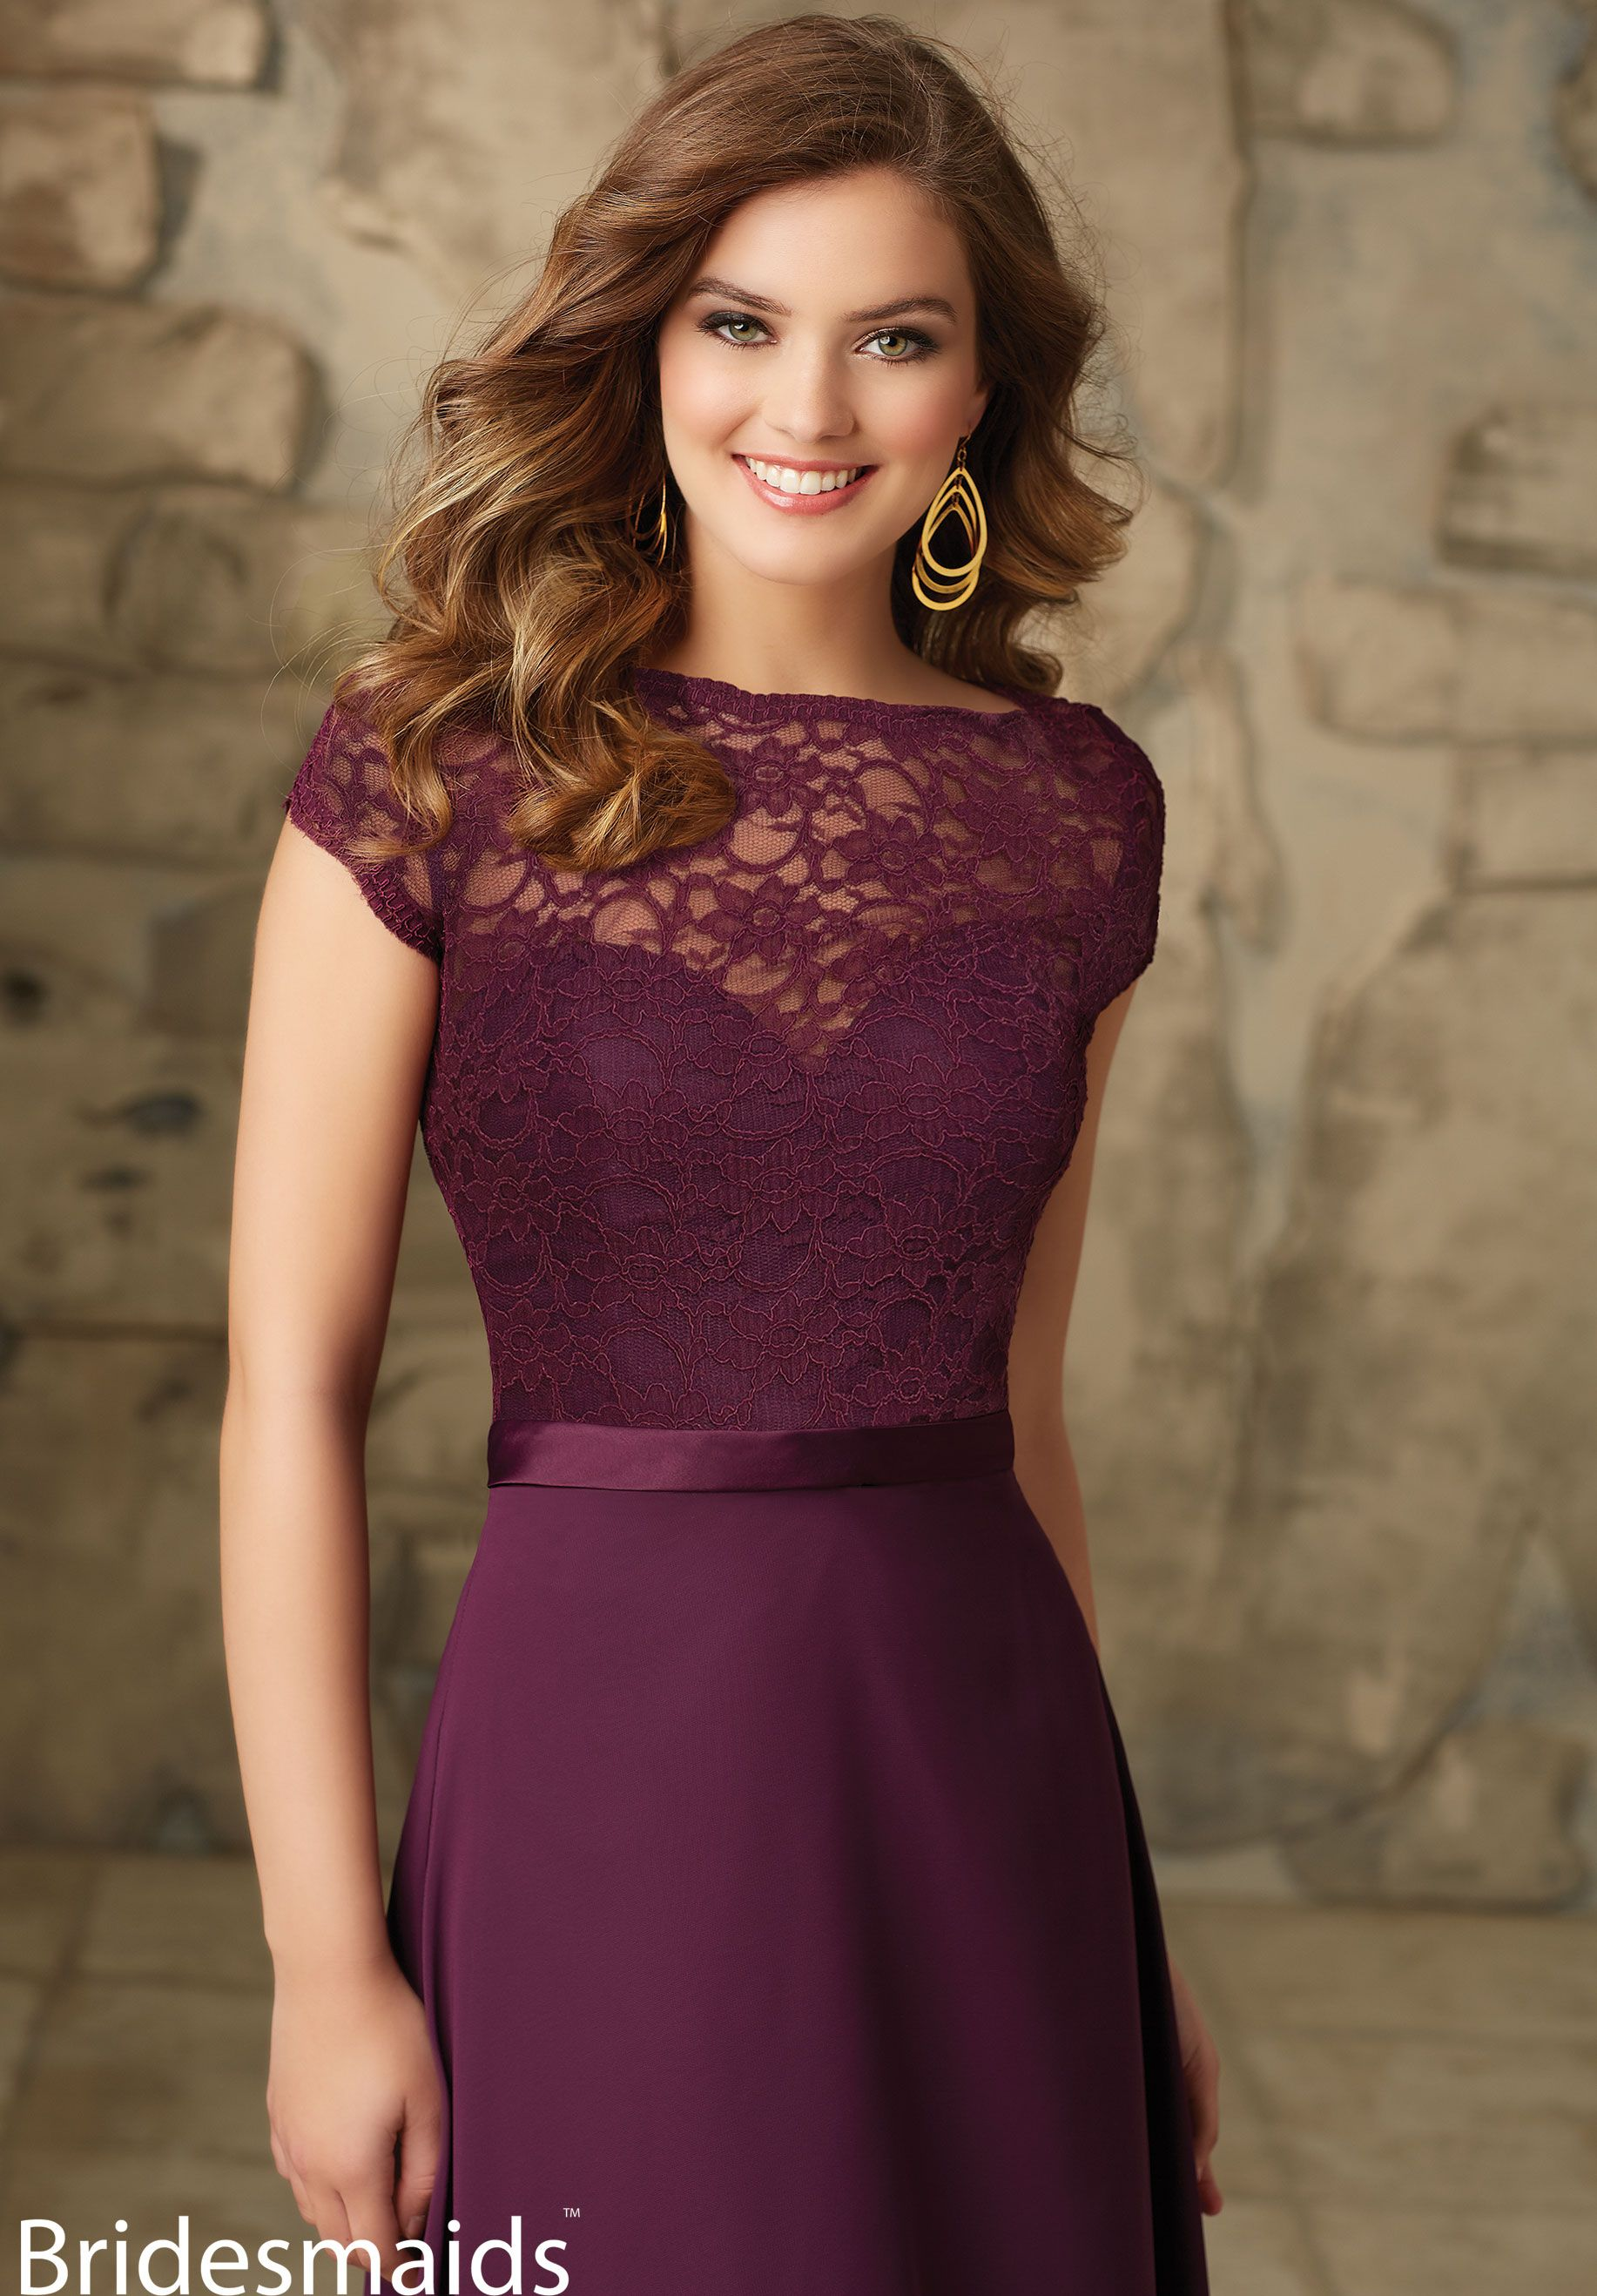 One of my bridesmaid dresses comes with a removable top one of my bridesmaid dresses comes with a removable top friendofthebride hendersonwedding116 ombrellifo Image collections